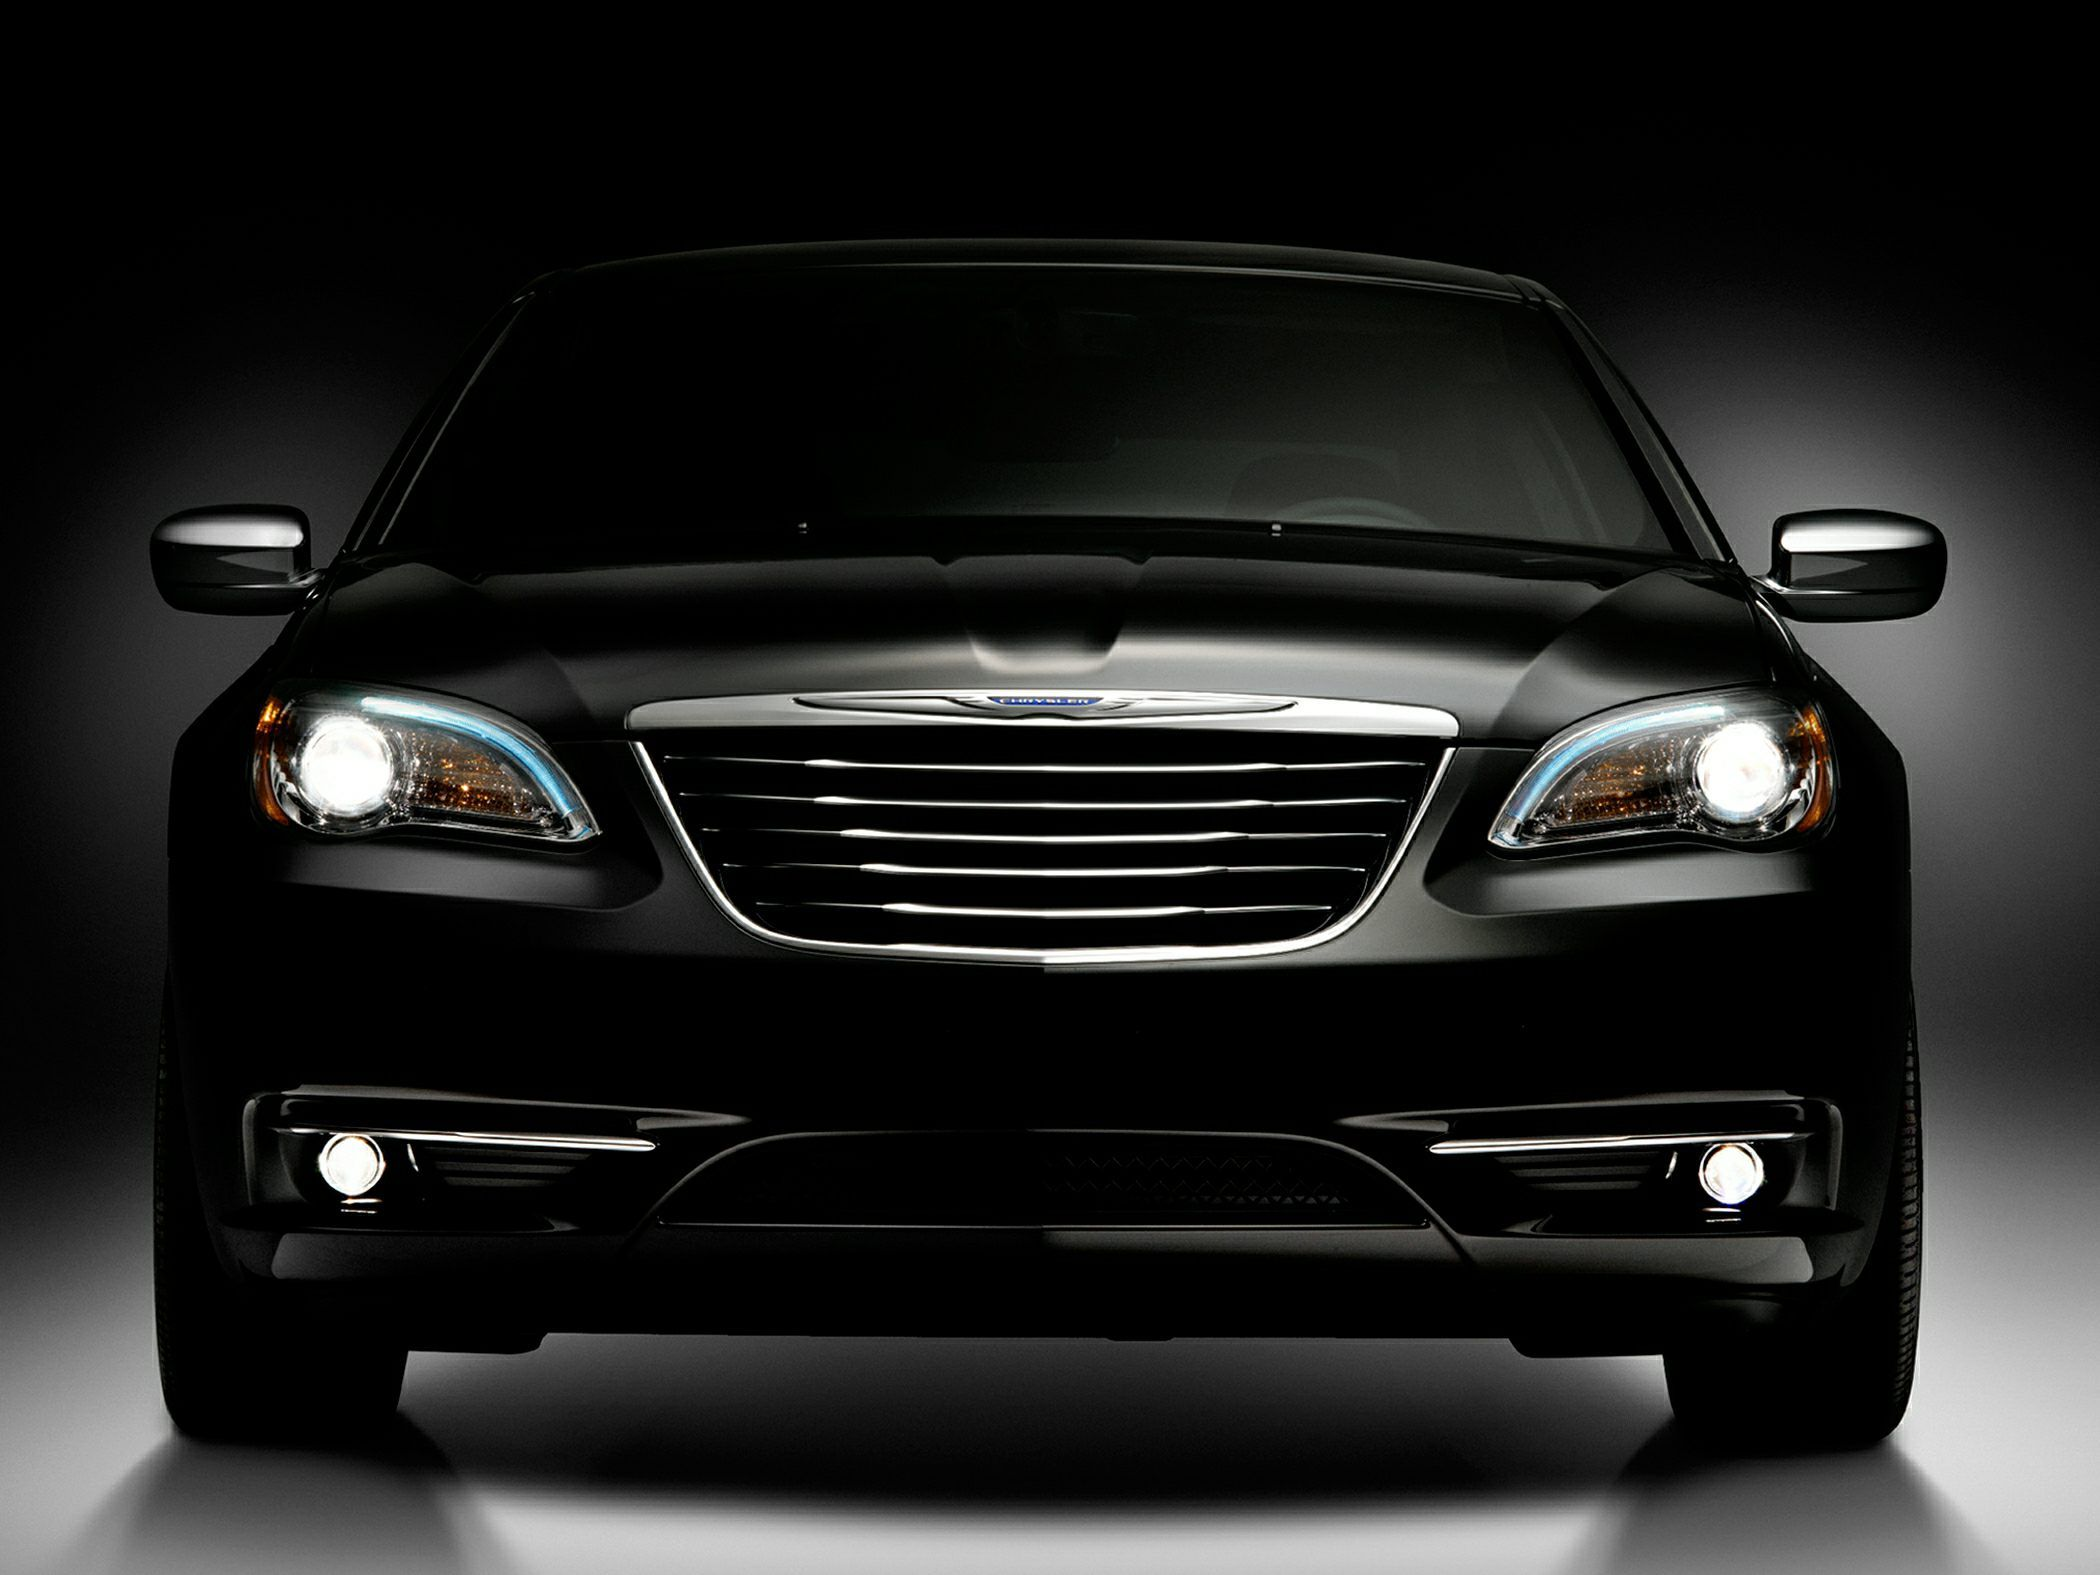 Pin By Bayside Chrysler Jeep Dodge On 2014 Chrysler Chrysler 200